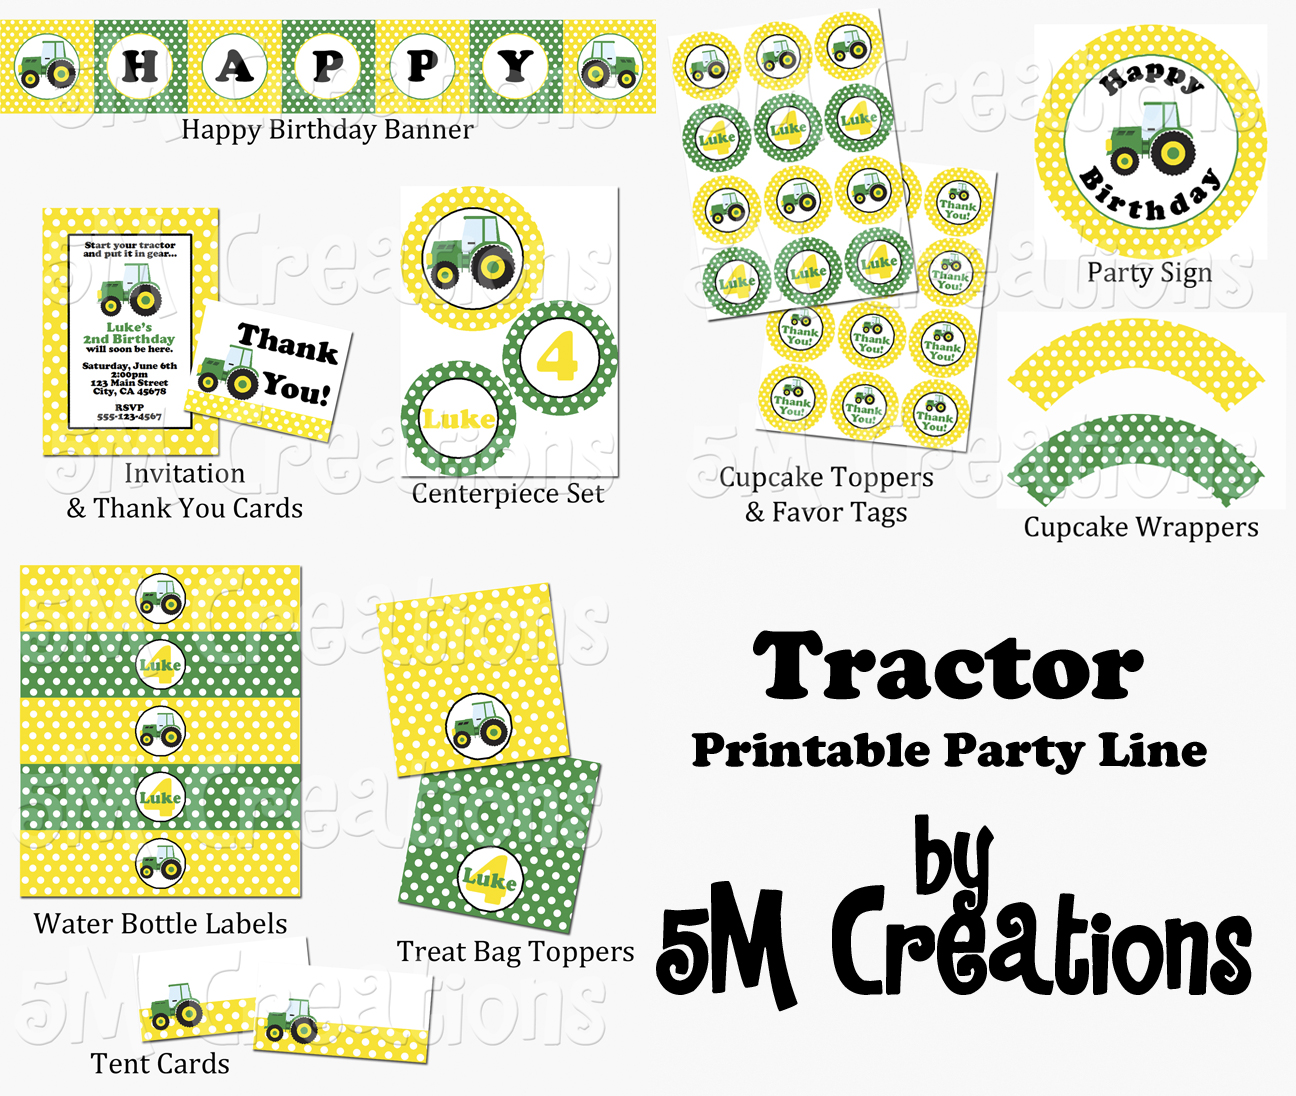 John Deere FREE Printable Birthday Party Invitations - oukas.info